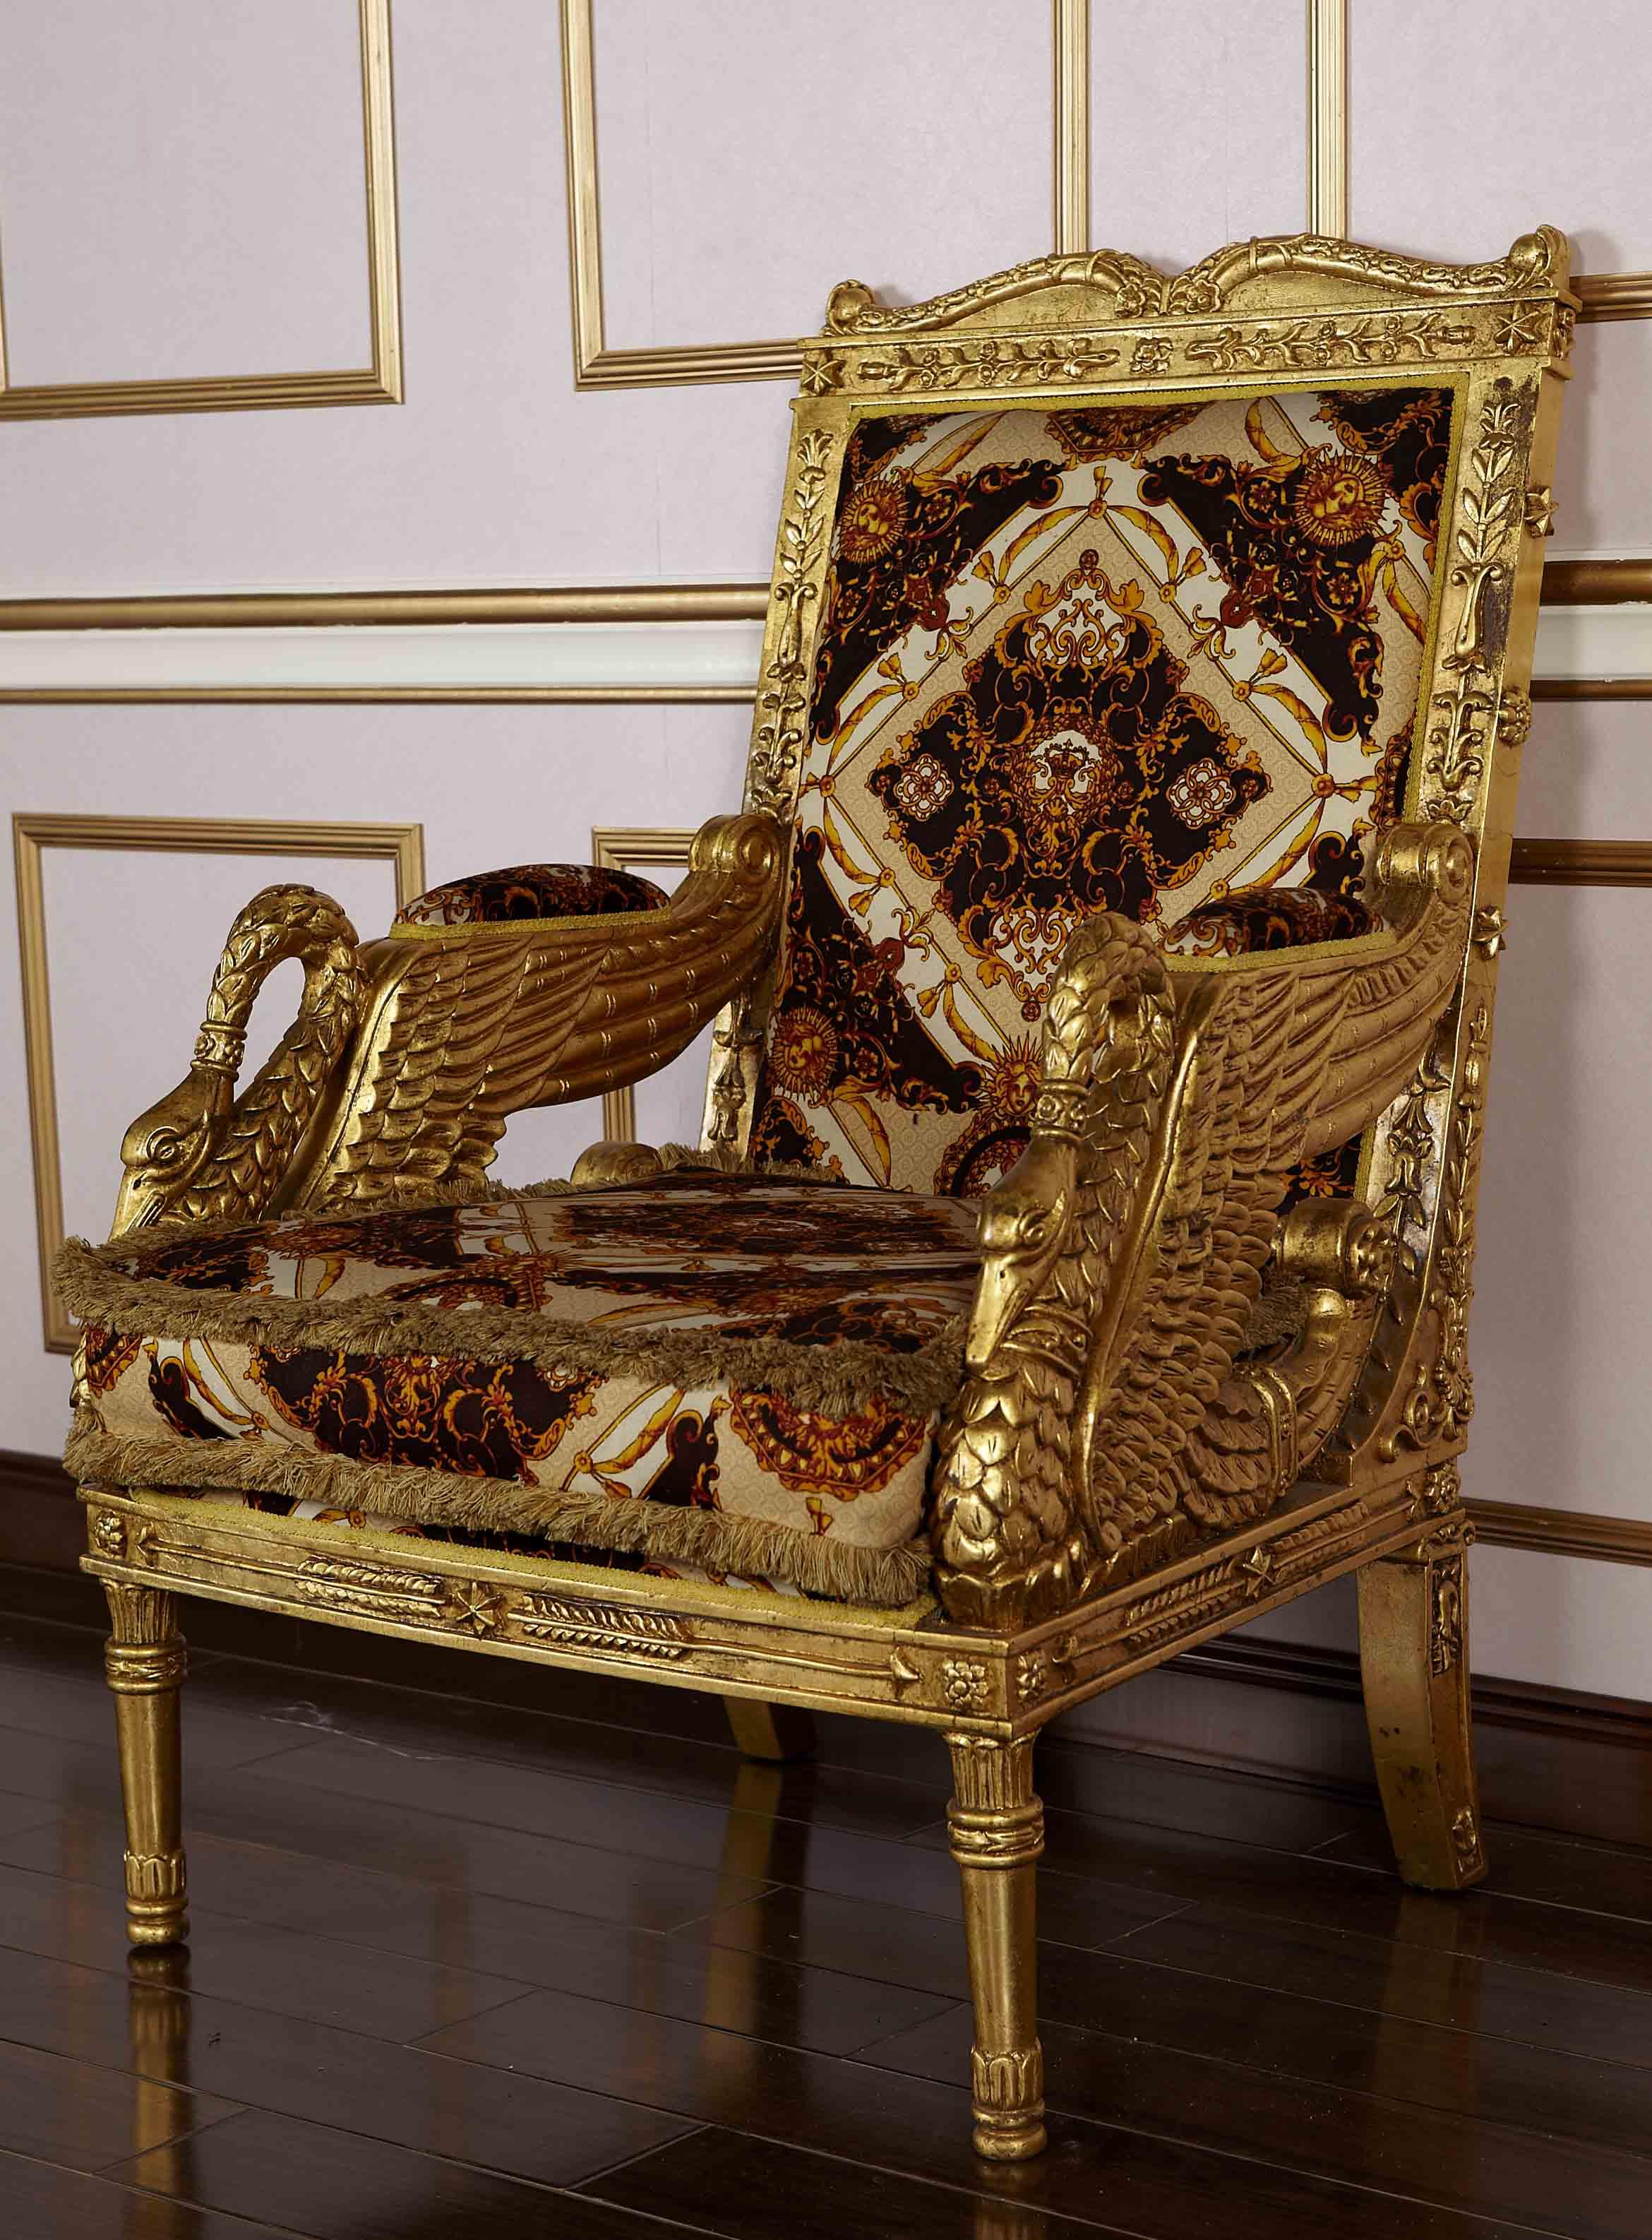 Delicieux Royal Classic European Furniture   Hand Carved Solid Wood Armchair Royal  Sofa European Furniture Solid Wood Armchair Online With $1470.62/Piece On  ...